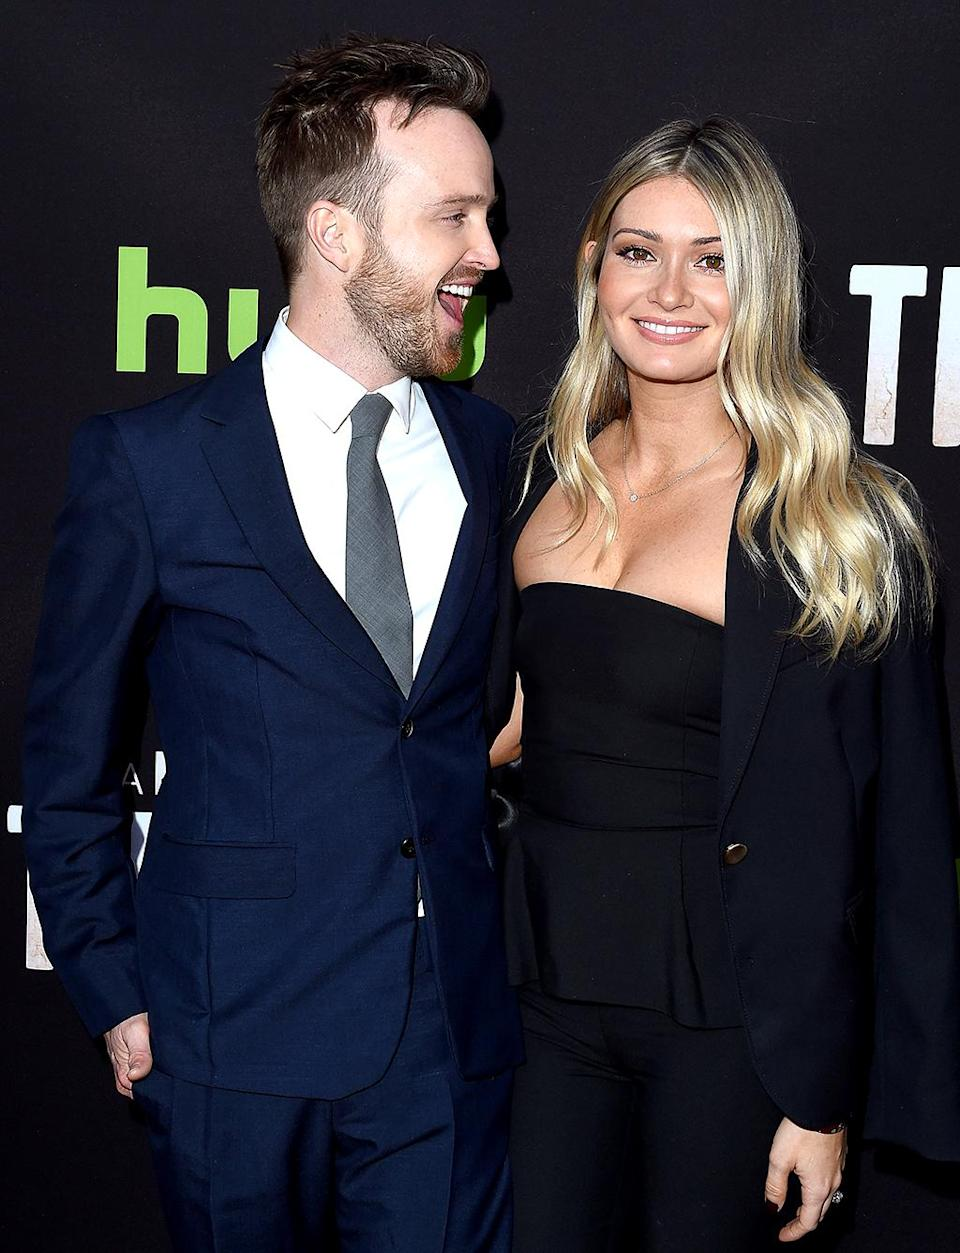 """<p>They came for the music and left in love! The <i>Path</i> actor met his future bride, the co-founder of Kind Campaign, at the Coachella Music Festival and told her that night that he planned to marry her. One year later, again at the fest, they shared their first kiss on the Ferris wheel. The oh-so-adorable pair have been married since 2013 and are now <a rel=""""nofollow noopener"""" href=""""https://www.instagram.com/p/BNyFSRFg68k/?taken-by=laurenpaul8&hl=en"""" target=""""_blank"""" data-ylk=""""slk:talking babies"""" class=""""link rapid-noclick-resp"""">talking babies</a>. (Photo: Axelle/Bauer-Griffin/FilmMagic) </p>"""